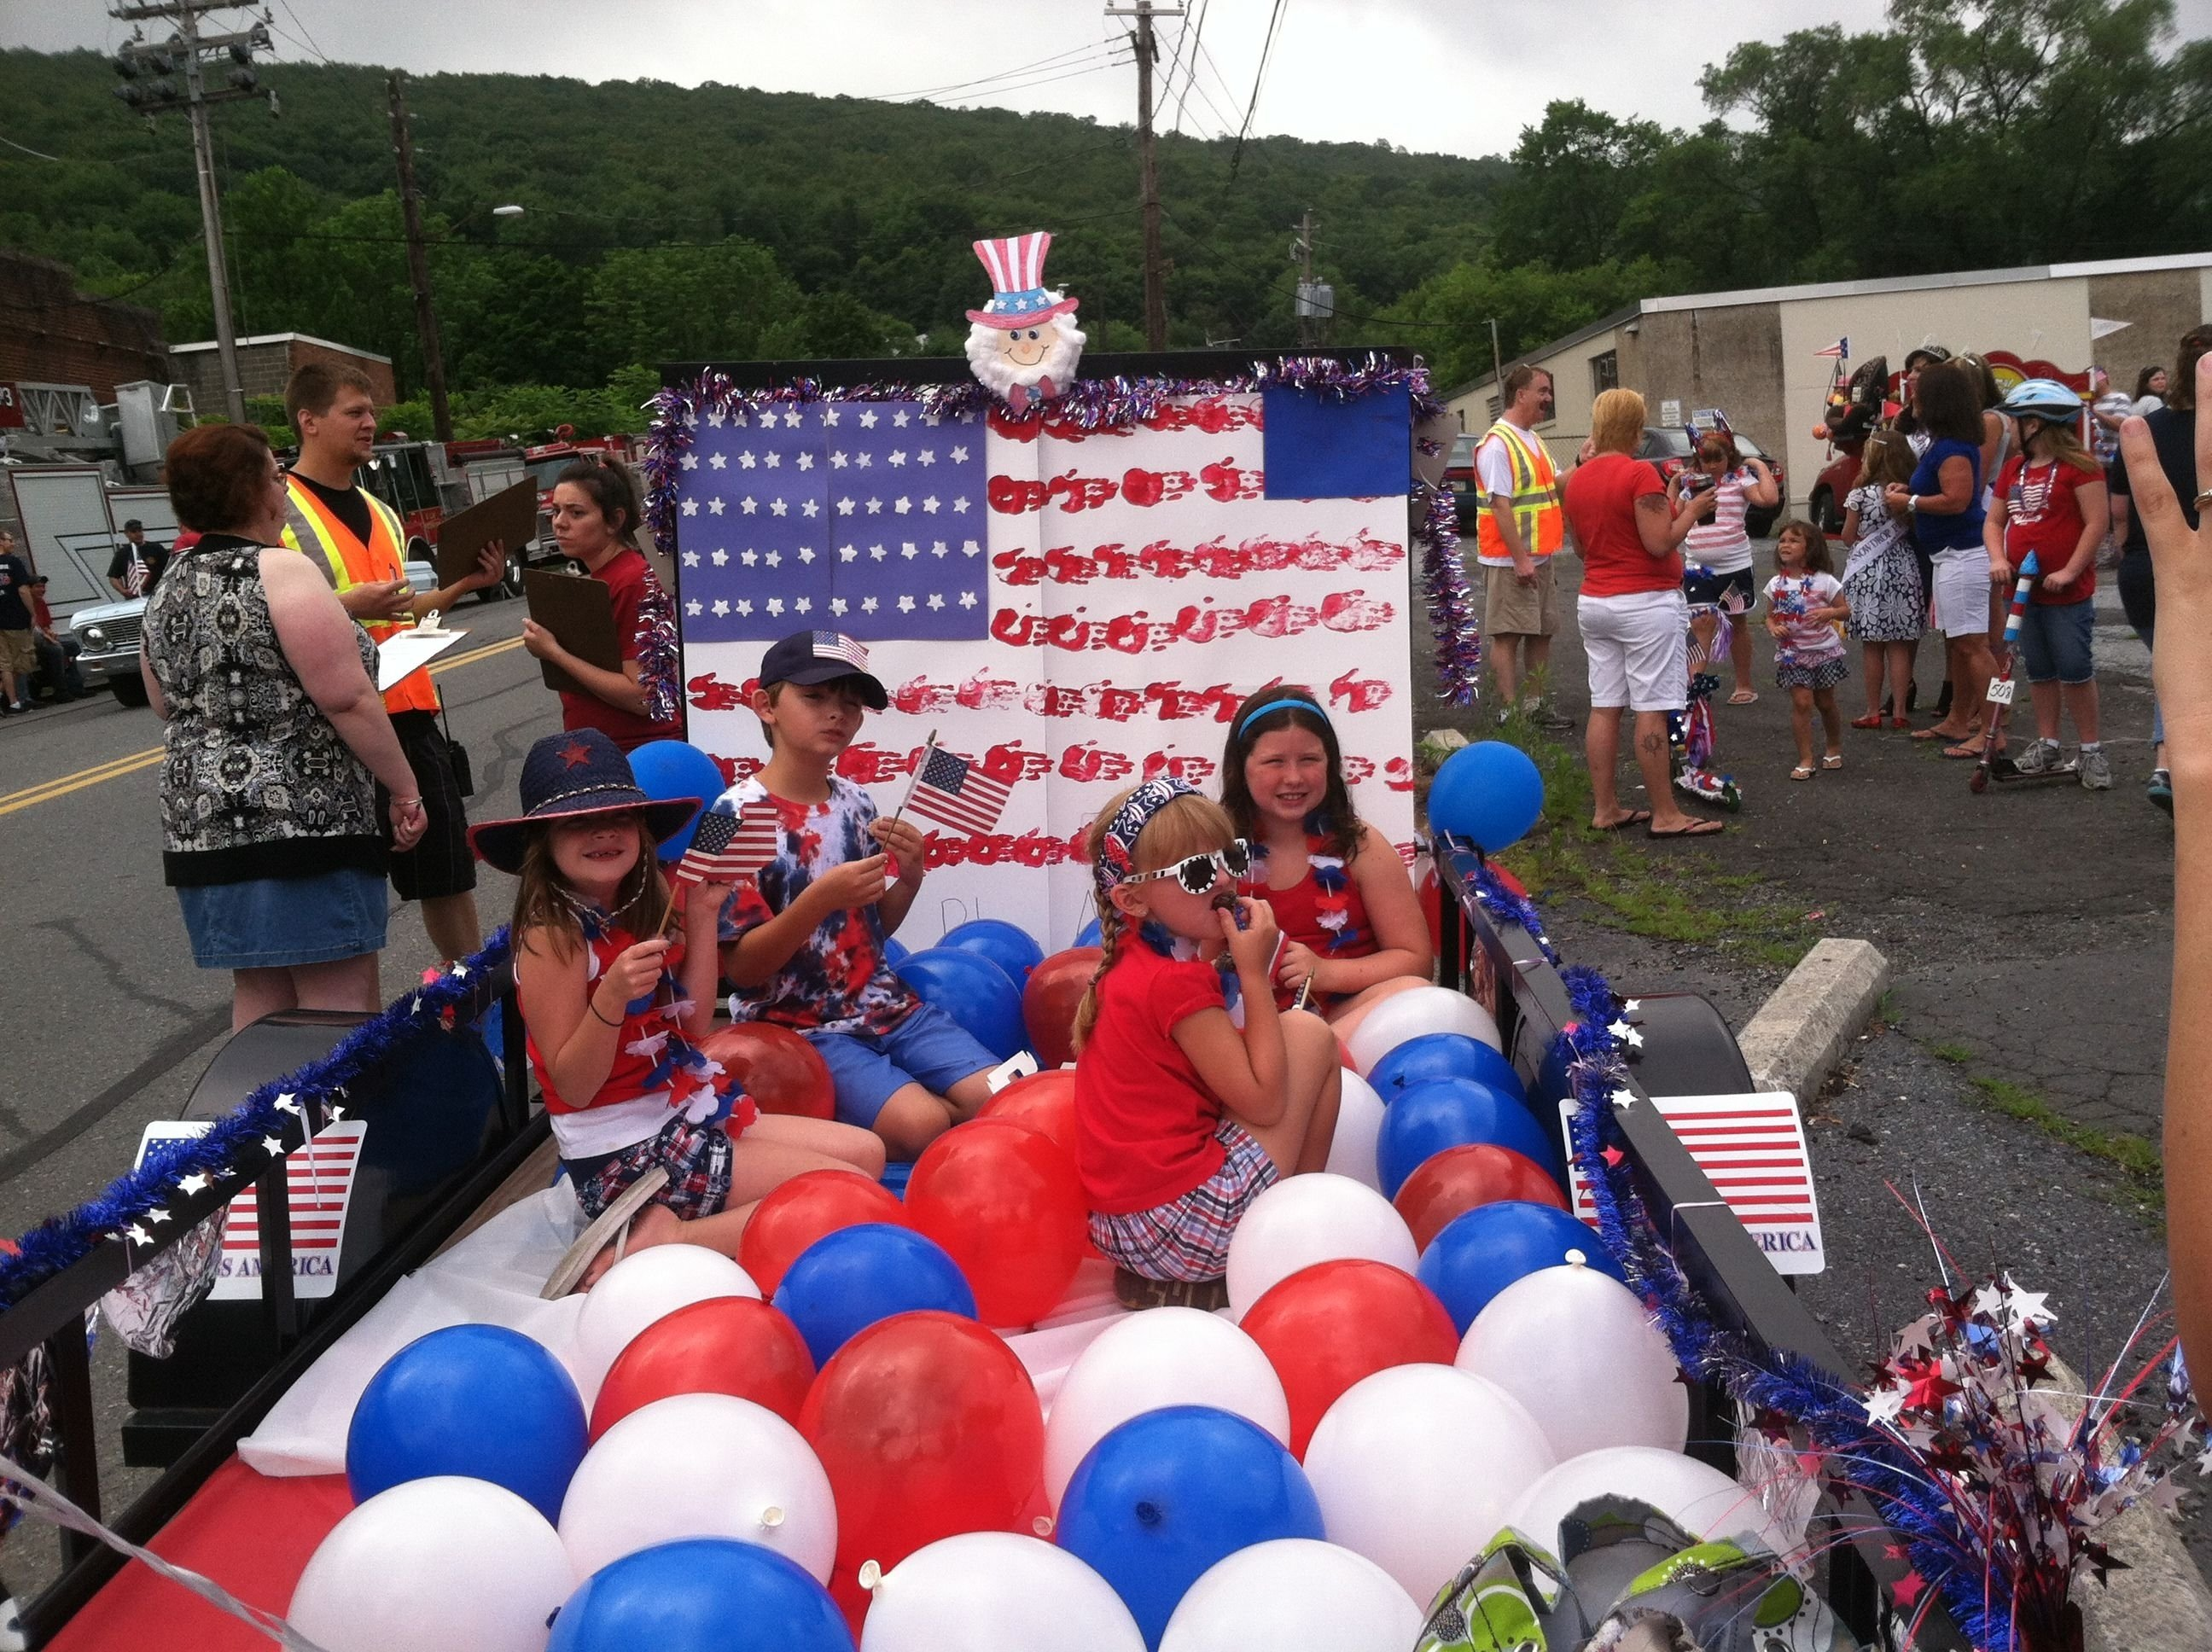 2013 4th of july parade float 2nd place win! | summer patriotic